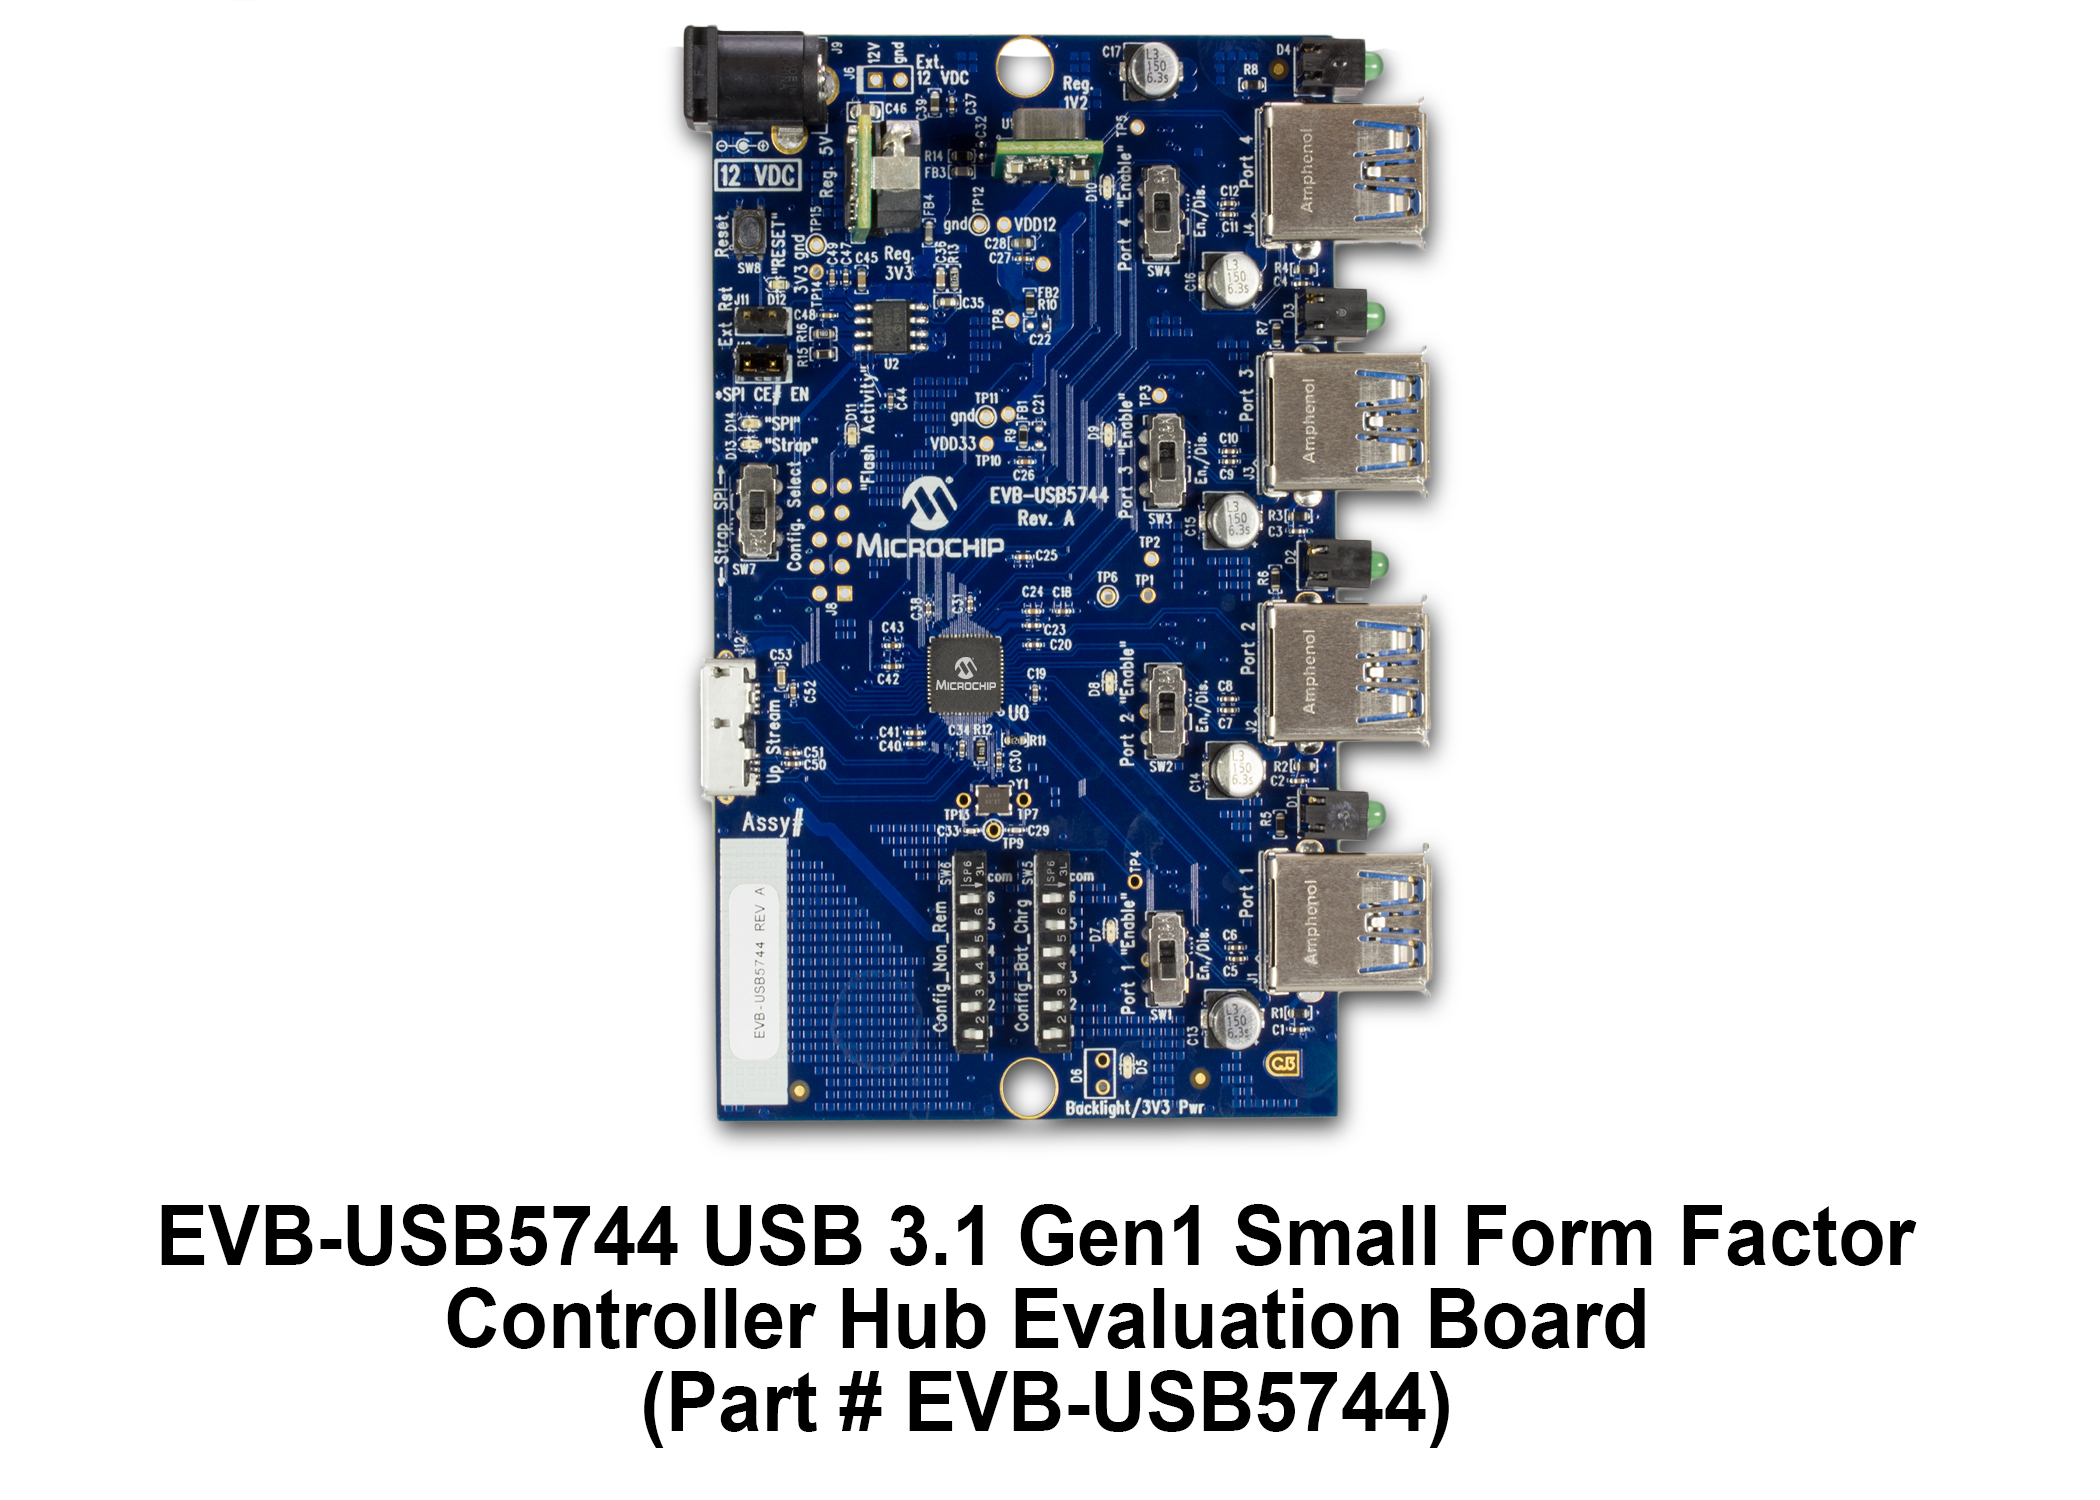 Development Tools Usb Interface Schematic Provides The Necessary Requirements And Options For Evaluating Usb5744 Smart Hub On A 4 Layer Rohs Compliant Printed Circuit Board Pcb